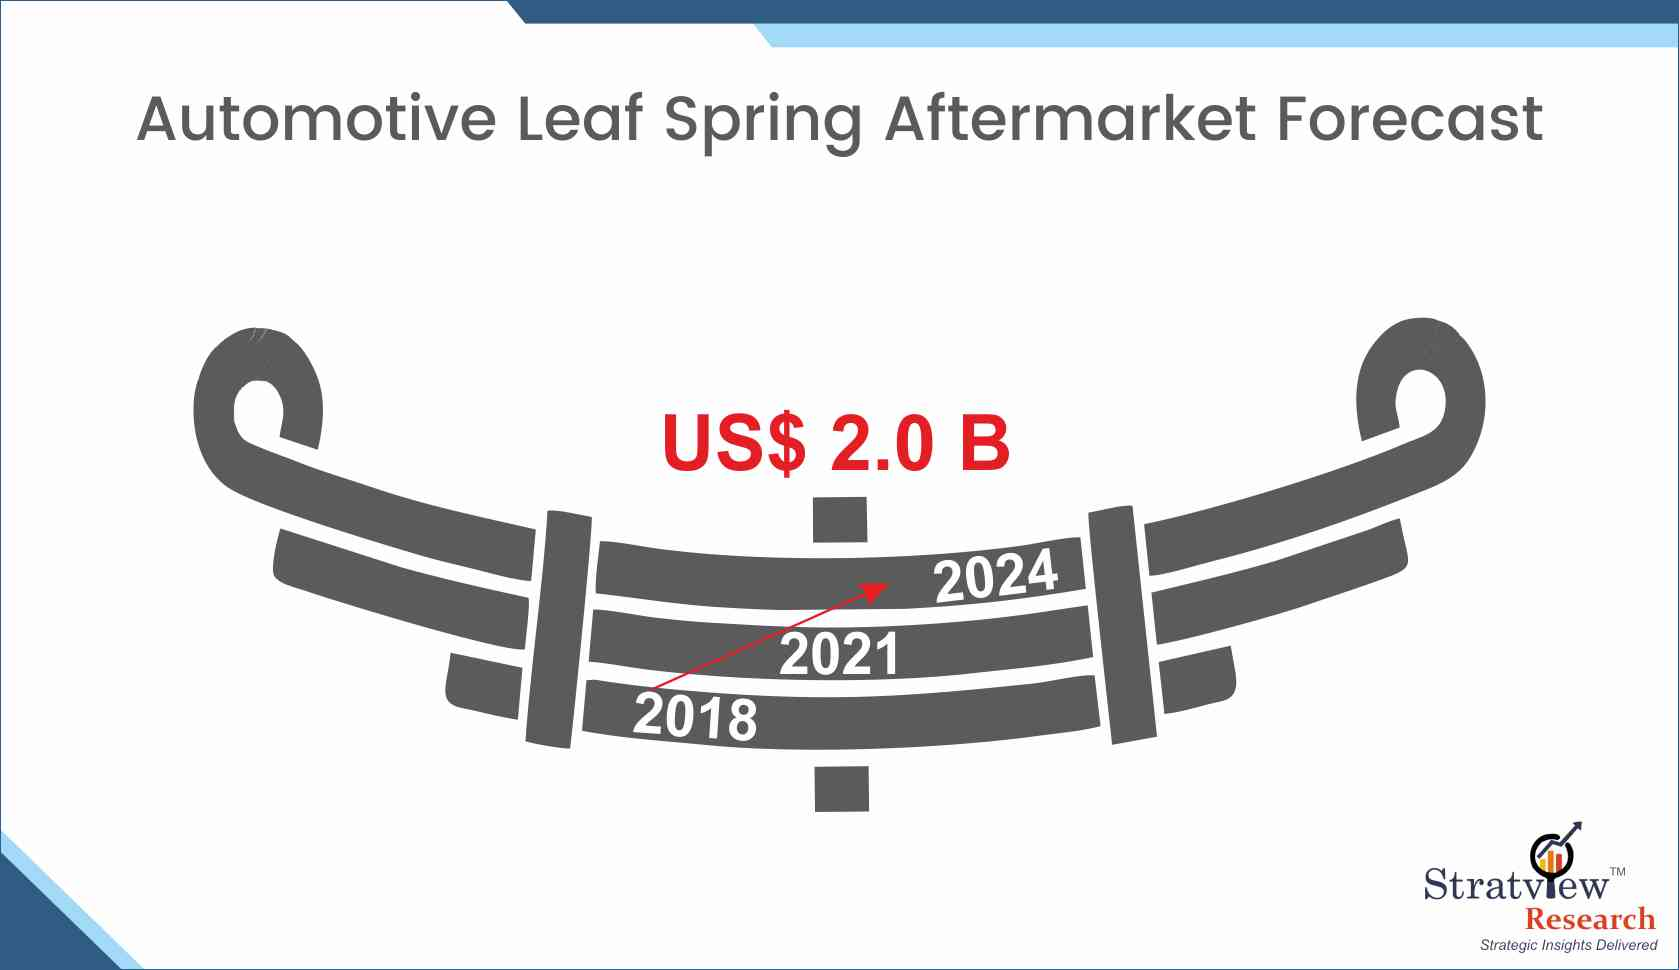 Automotive Leaf Spring Aftermarket